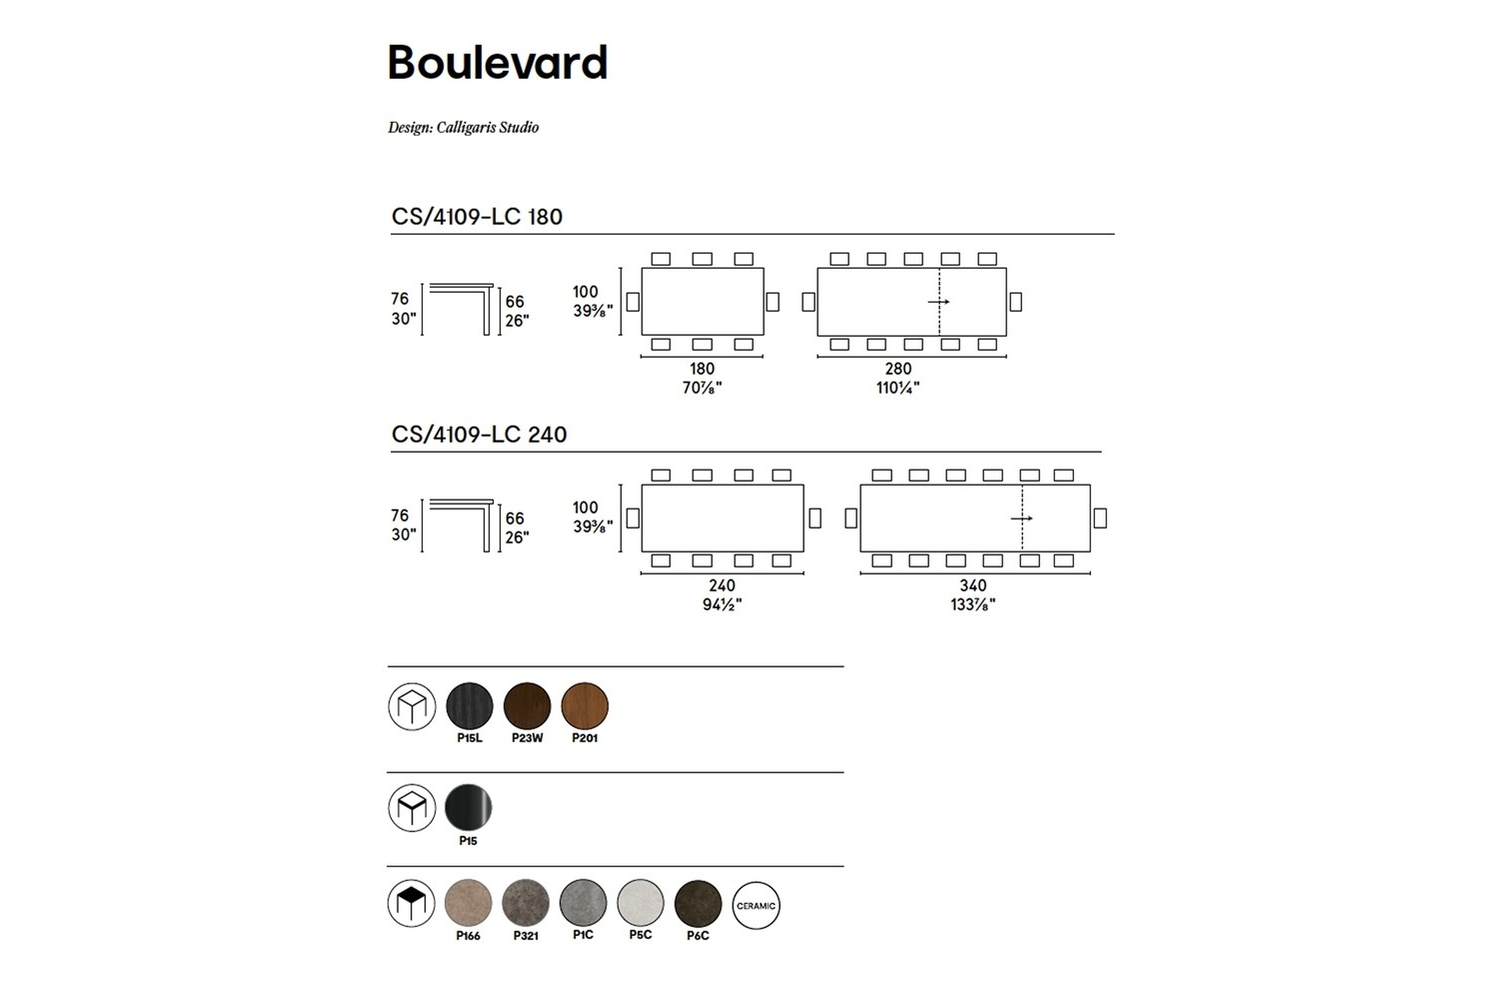 BOULEVARD Table Calligaris Schematics1 BOULEVARD_Table_Calligaris_Schematics1.jpg Calligaris